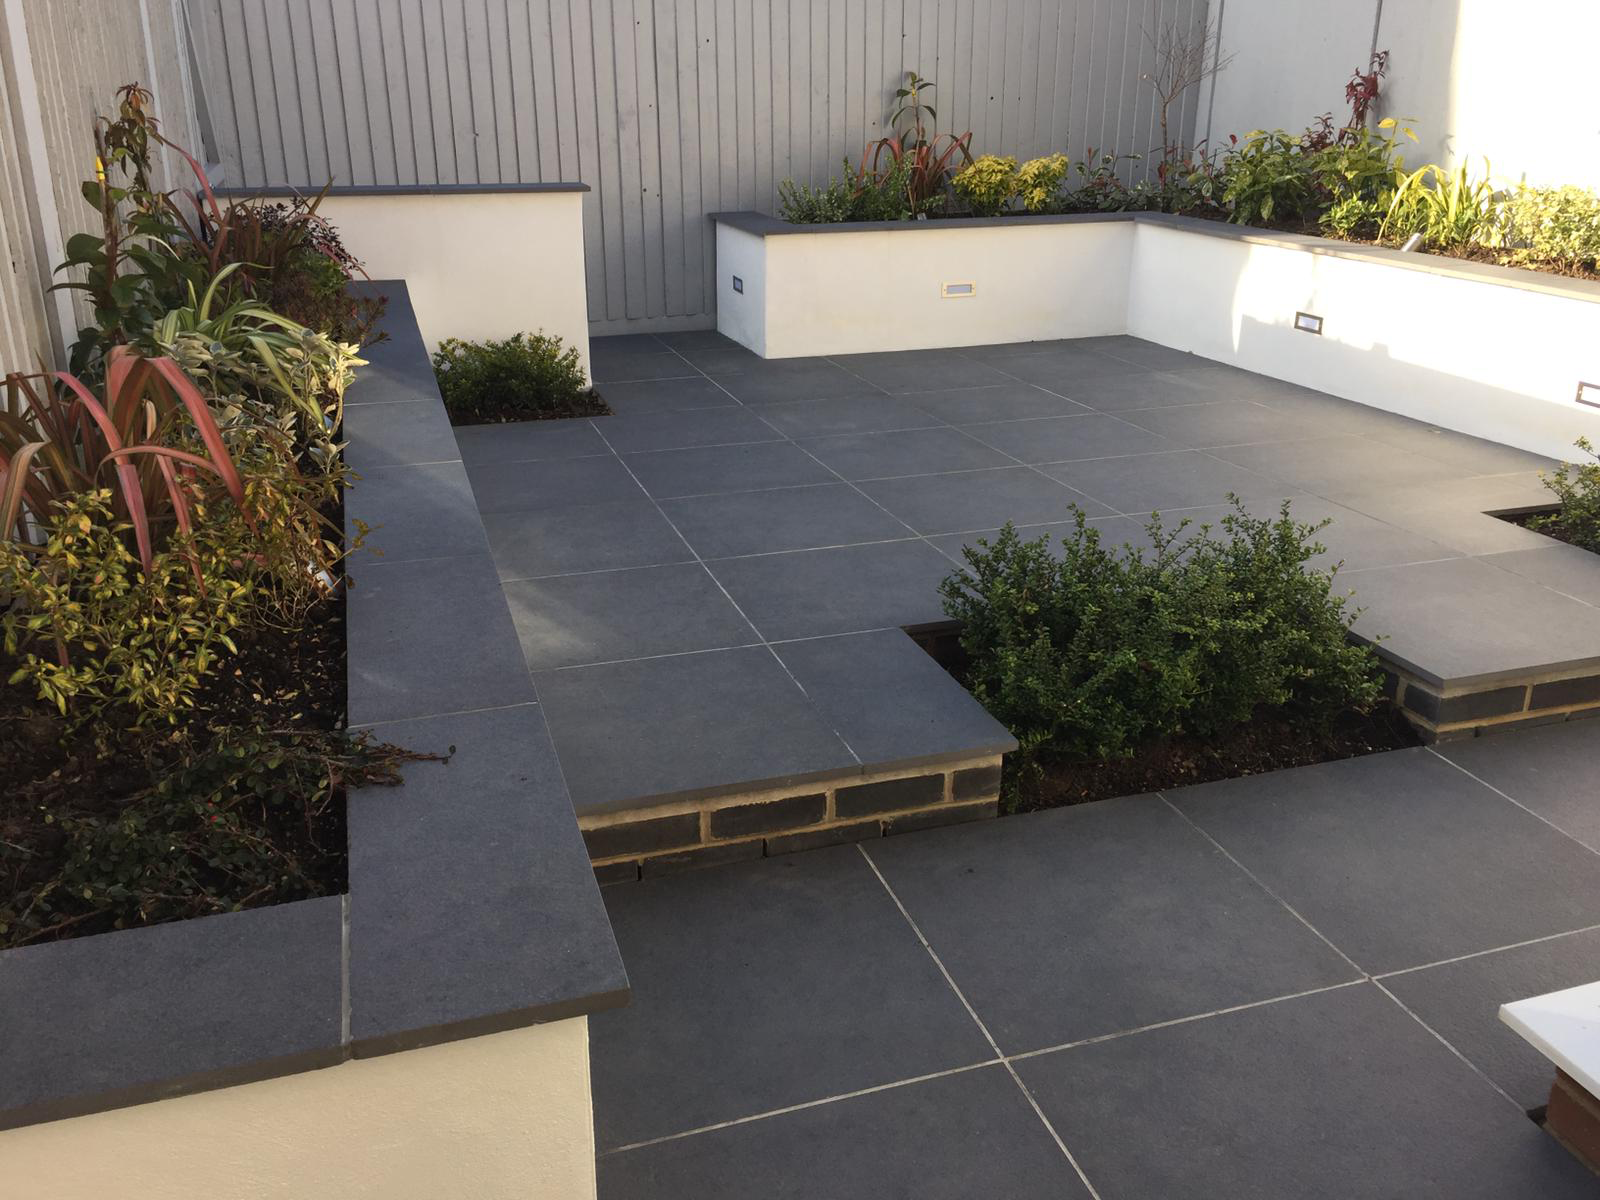 Paving slabs and raised borders - Landscaping Services